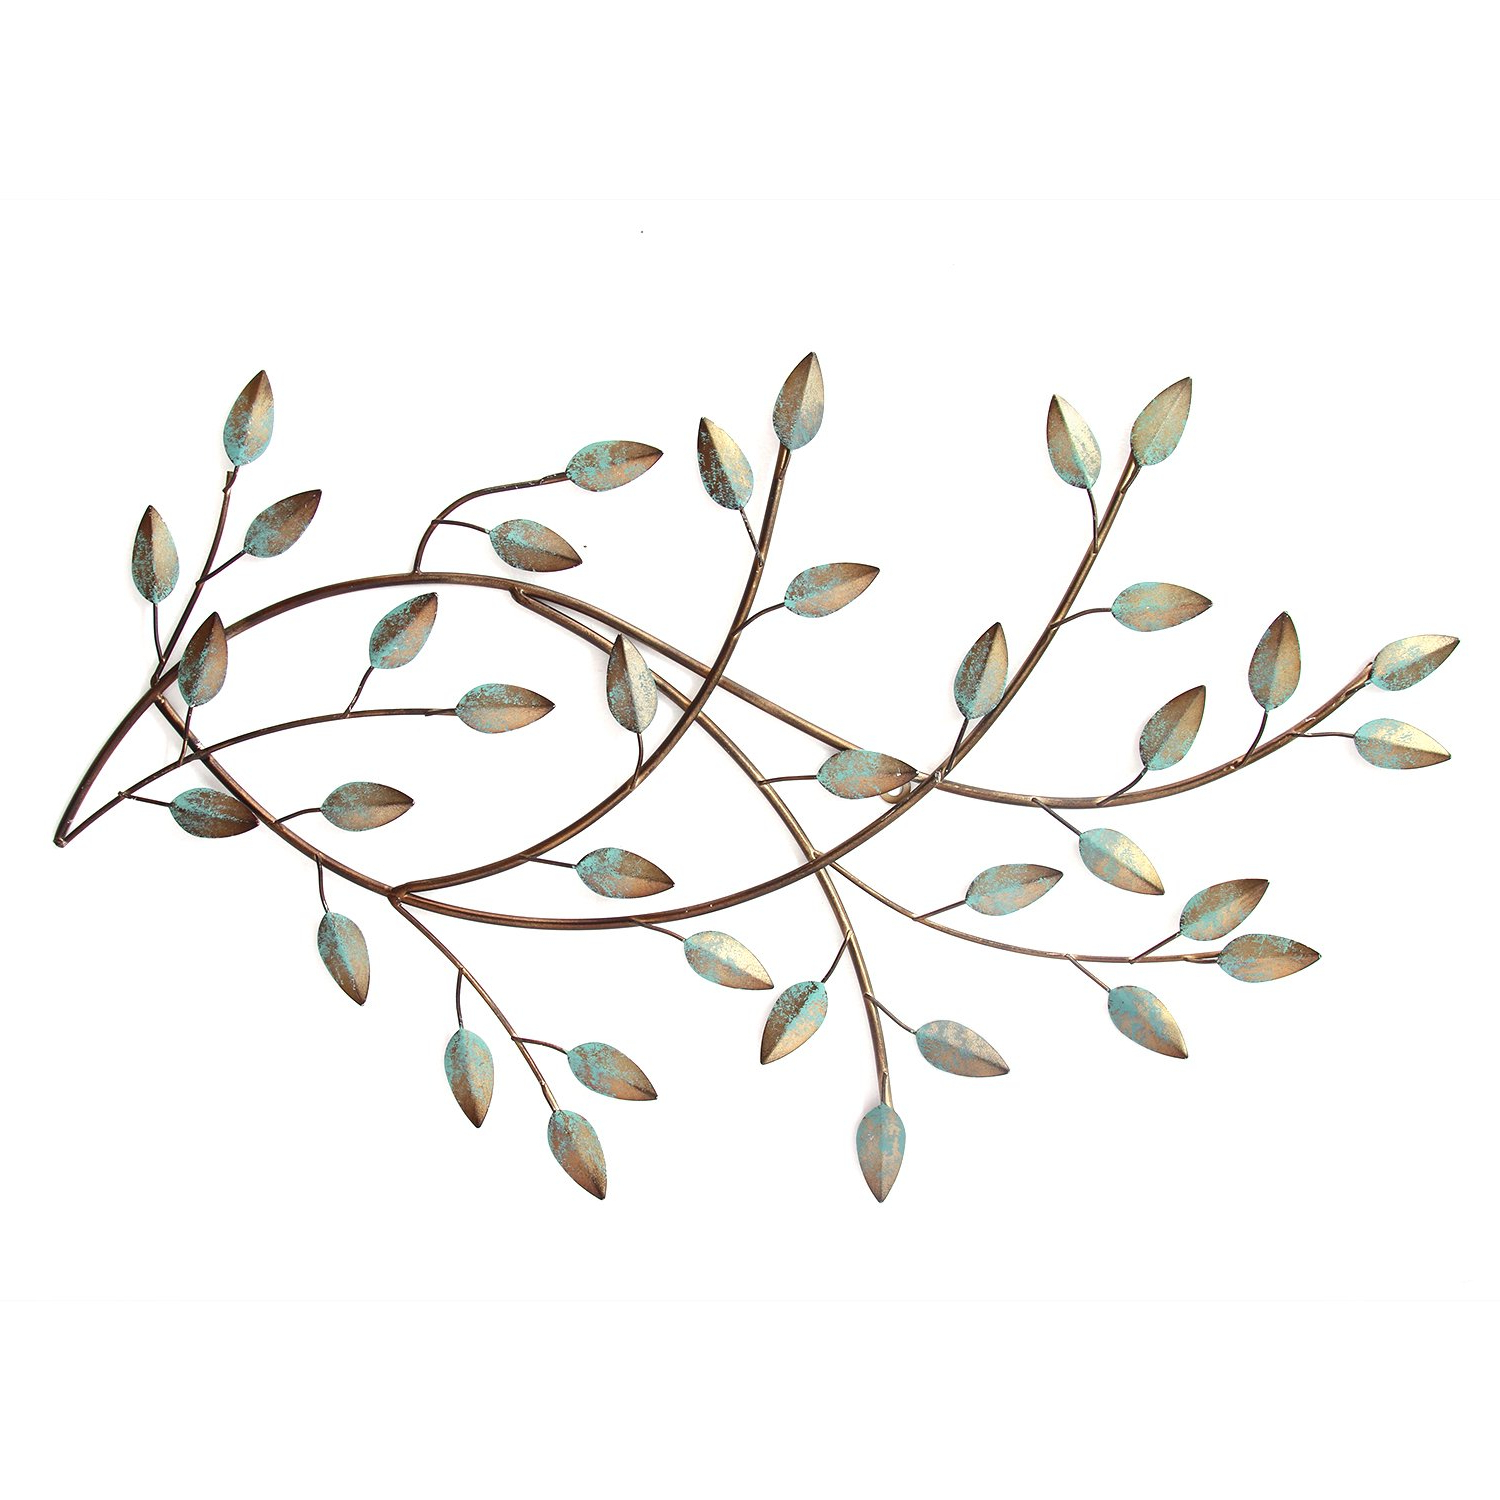 Newest Amazon: Stratton Home Decor Patina Blowing Leaves Wall Decor Inside Blowing Leaves Wall Decor (View 13 of 20)